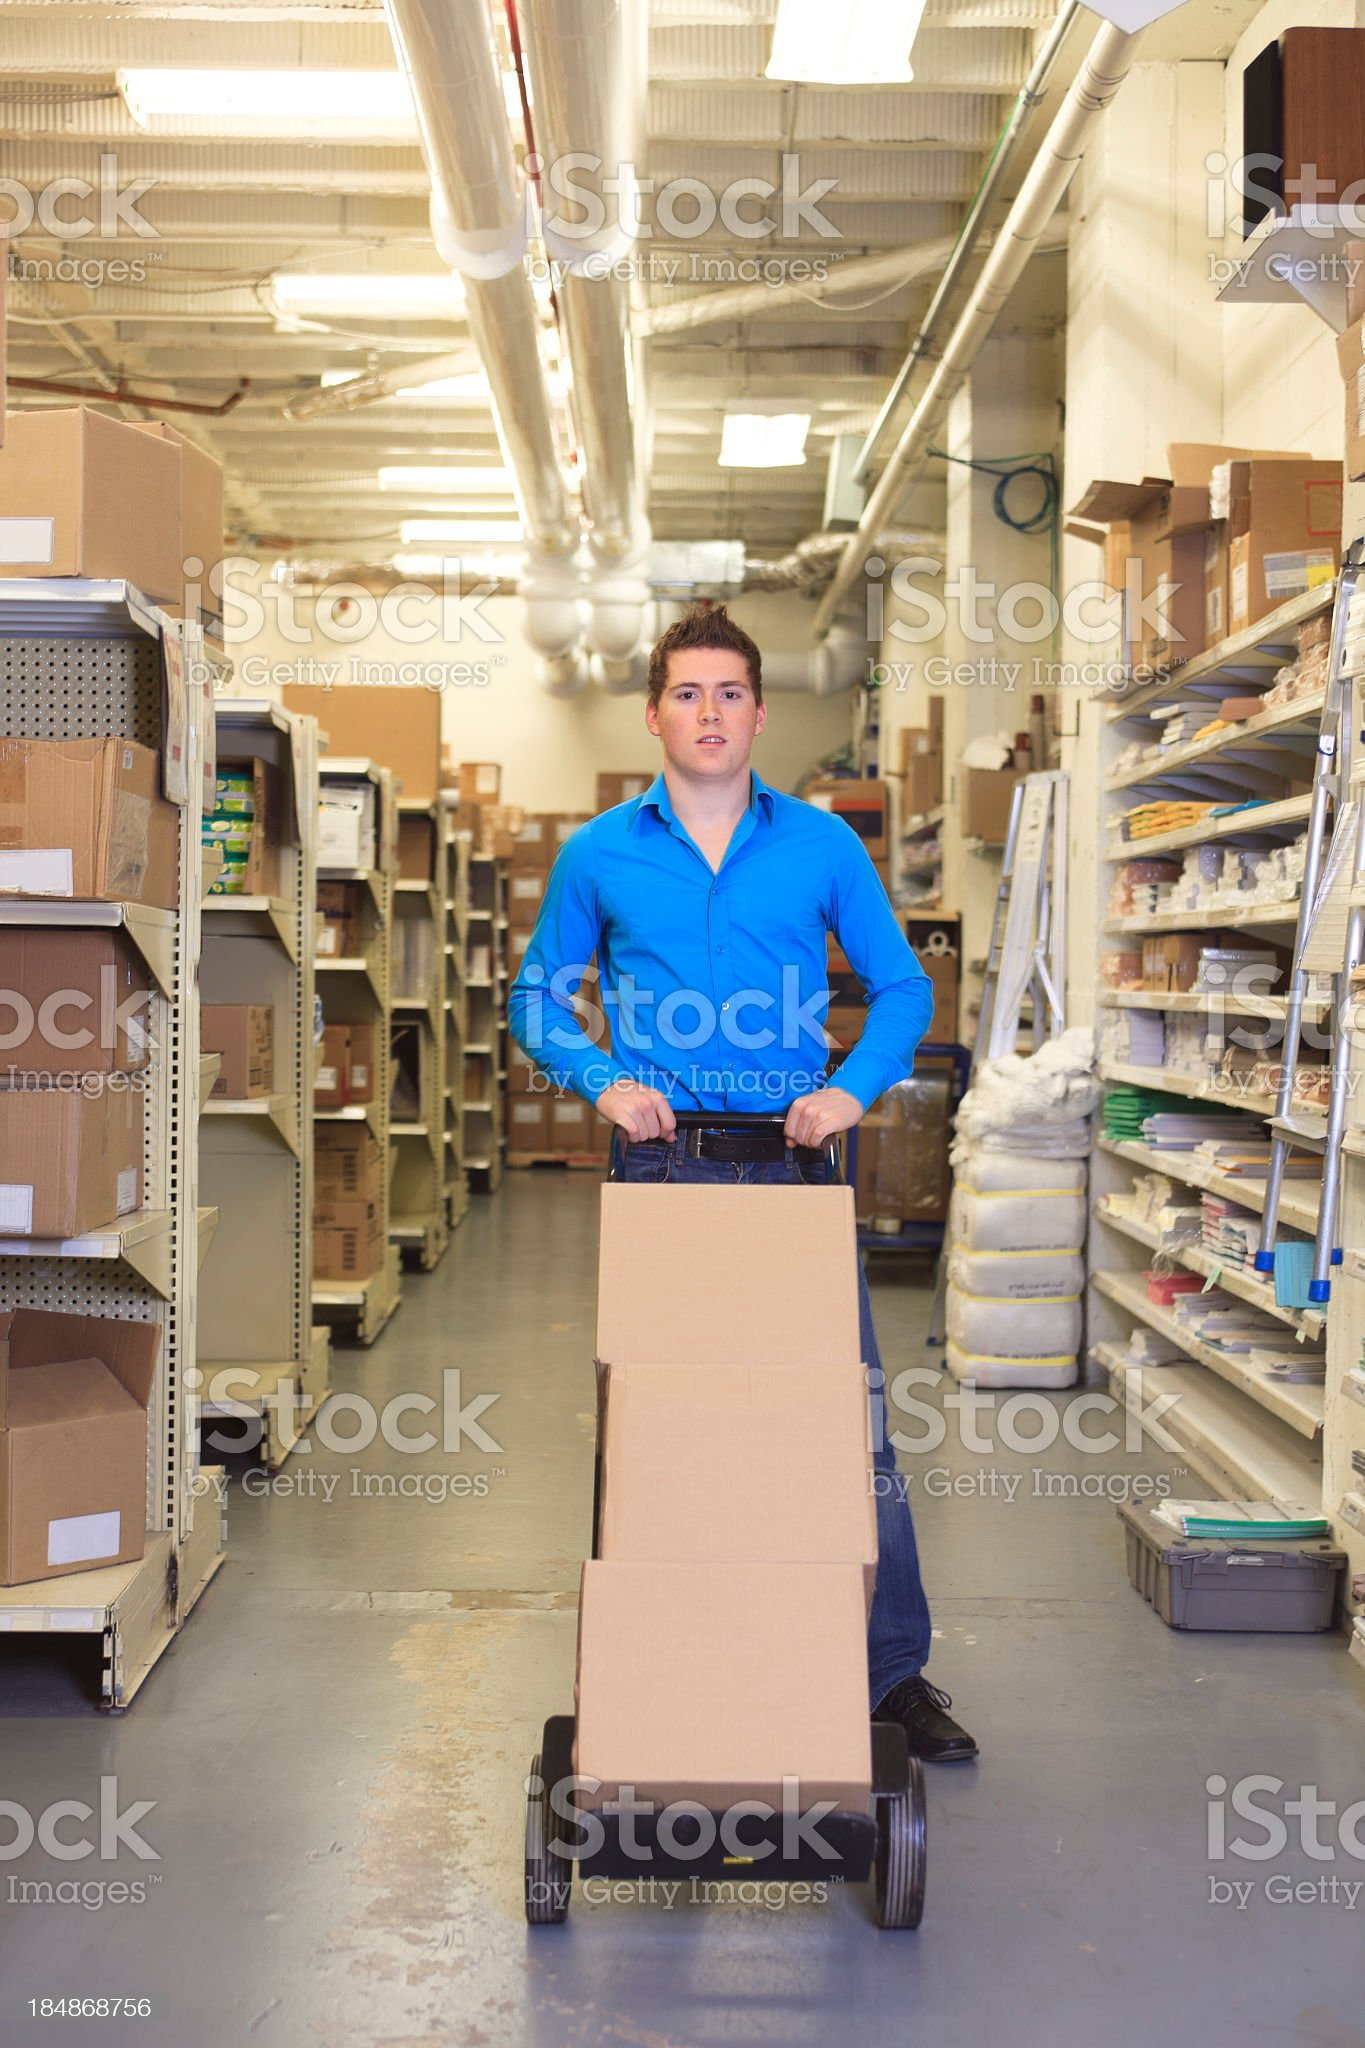 Medical Store - Vertical Box royalty-free stock photo